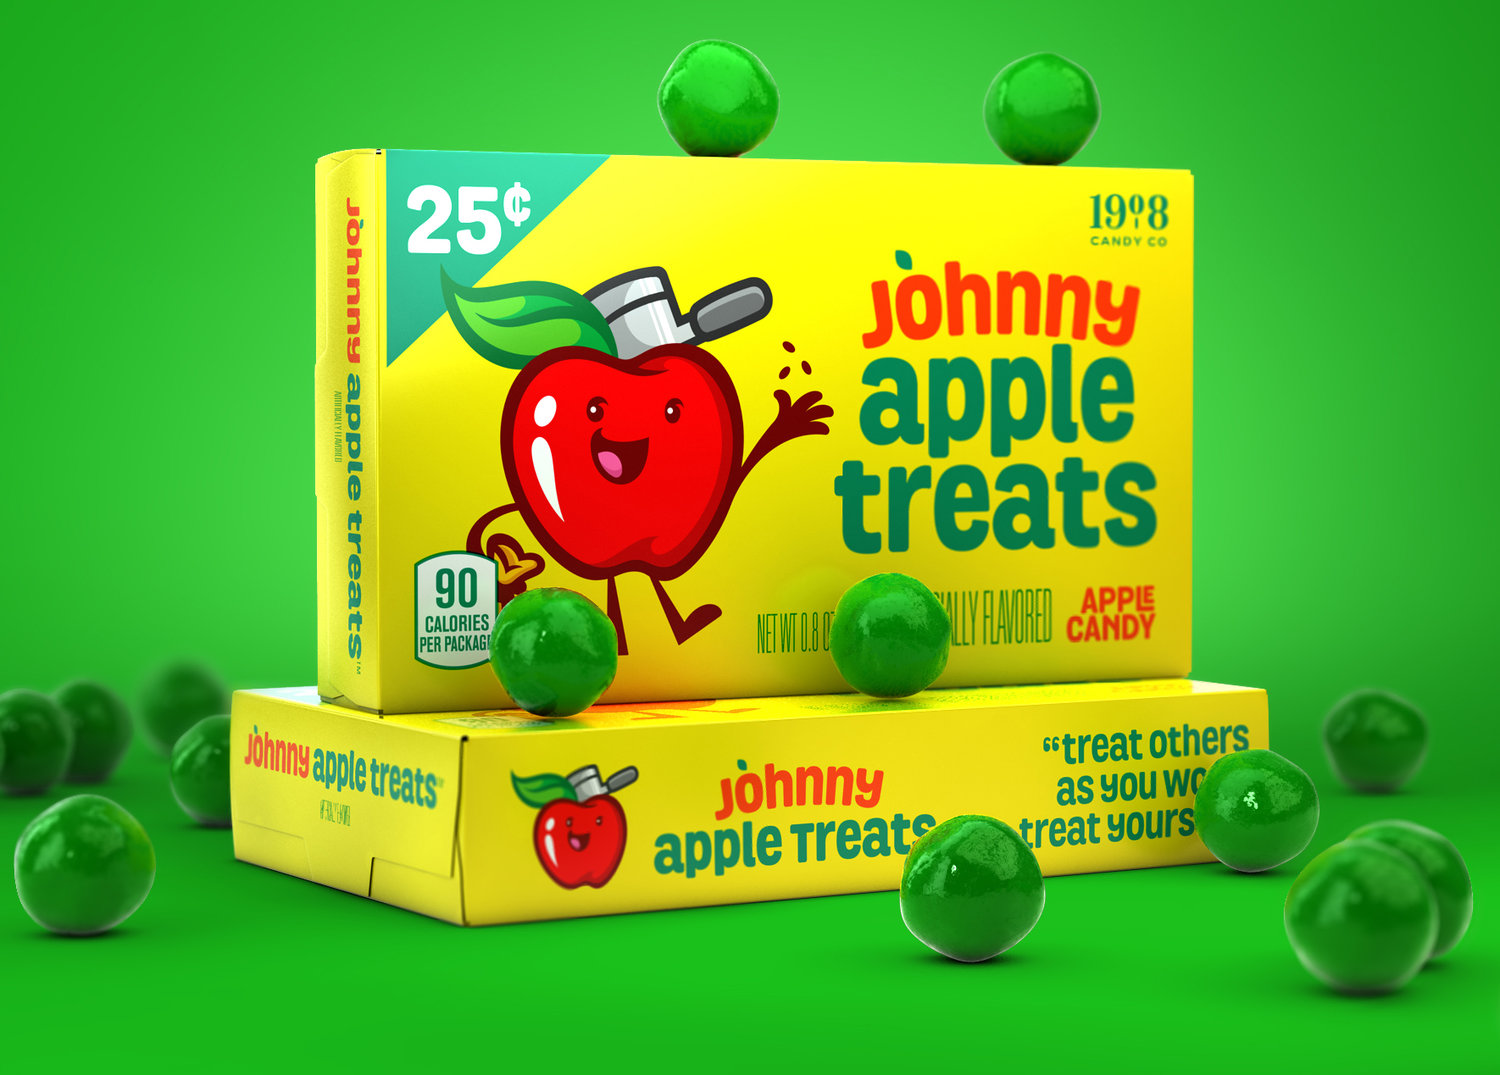 'Johnny Apple Treat' Brand Character & Packaging